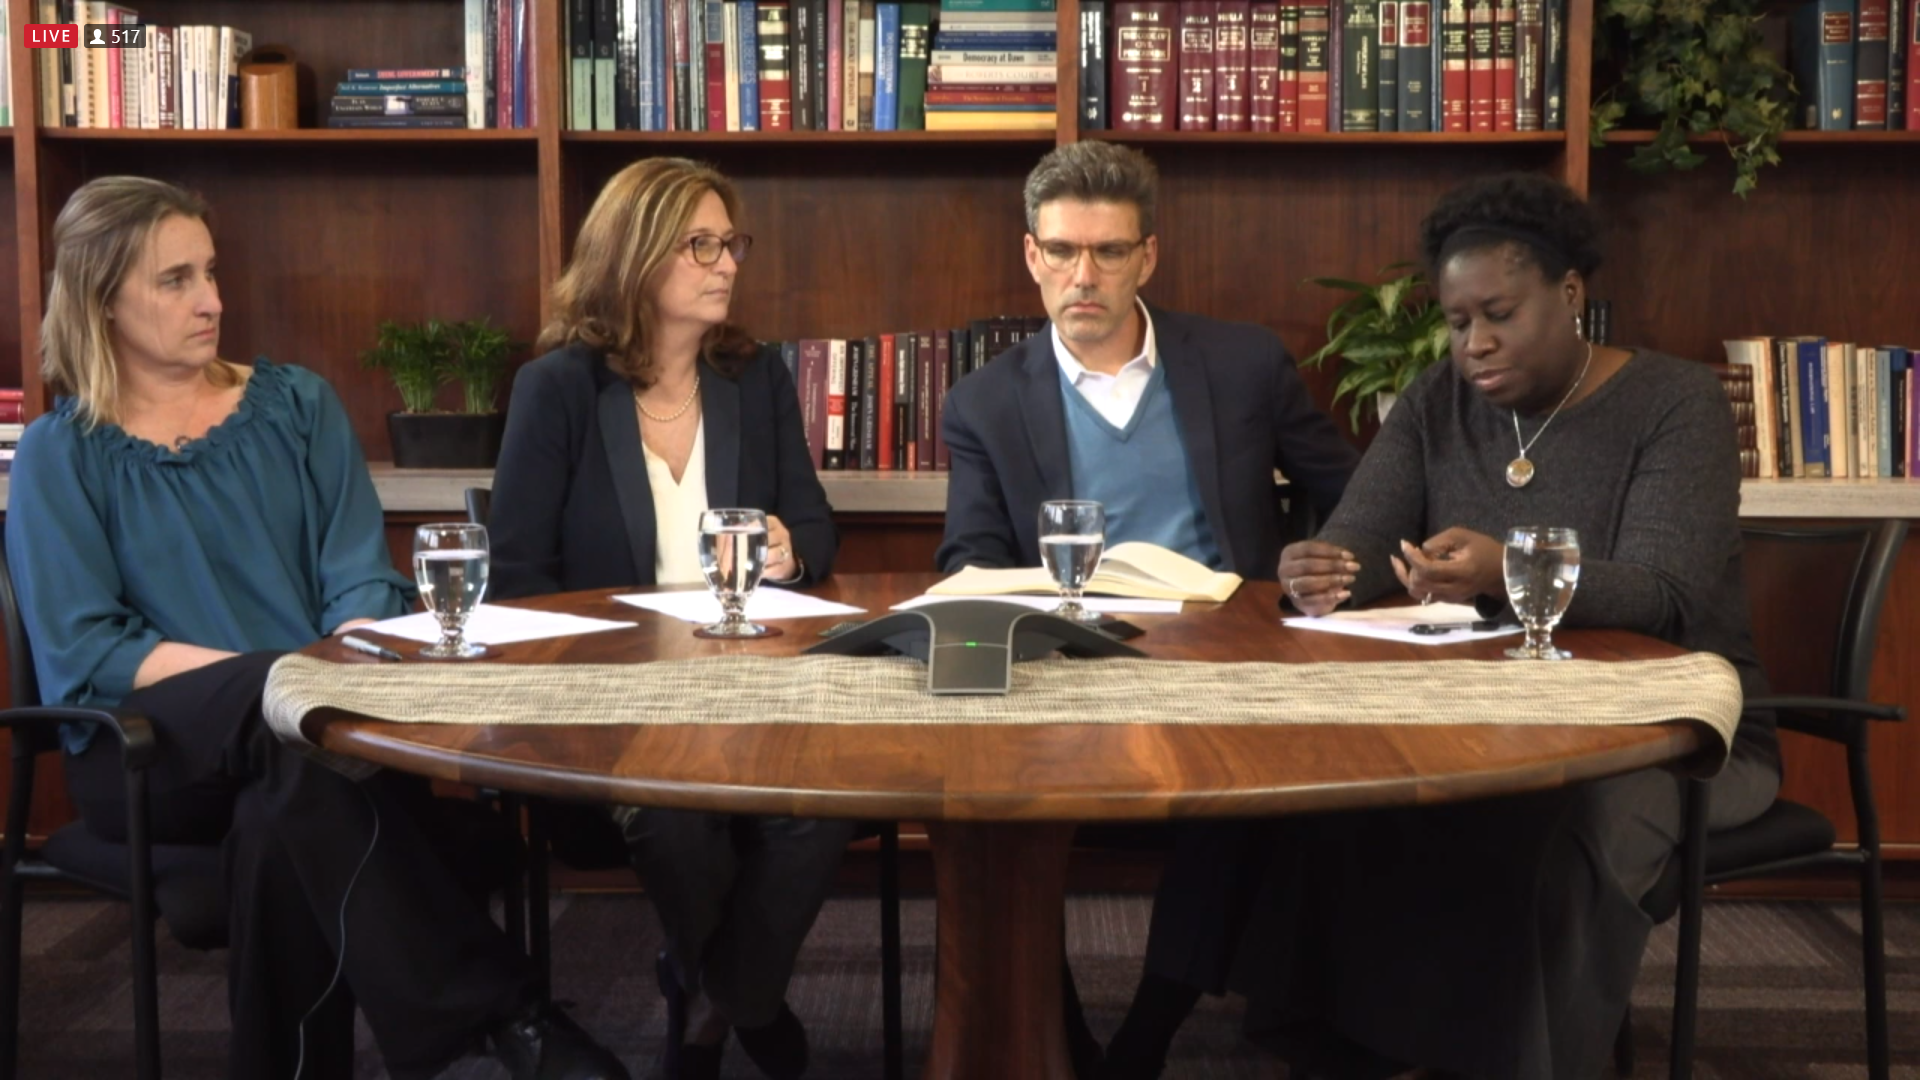 Assistant Vice President and Dean of Students Dianna Graves, Vice President of Student Affairs Sharon Basso, President Hiram Chodosh, Assistant Vice President for Diversity and Inclusion Nyree Gray speak during the livestream.